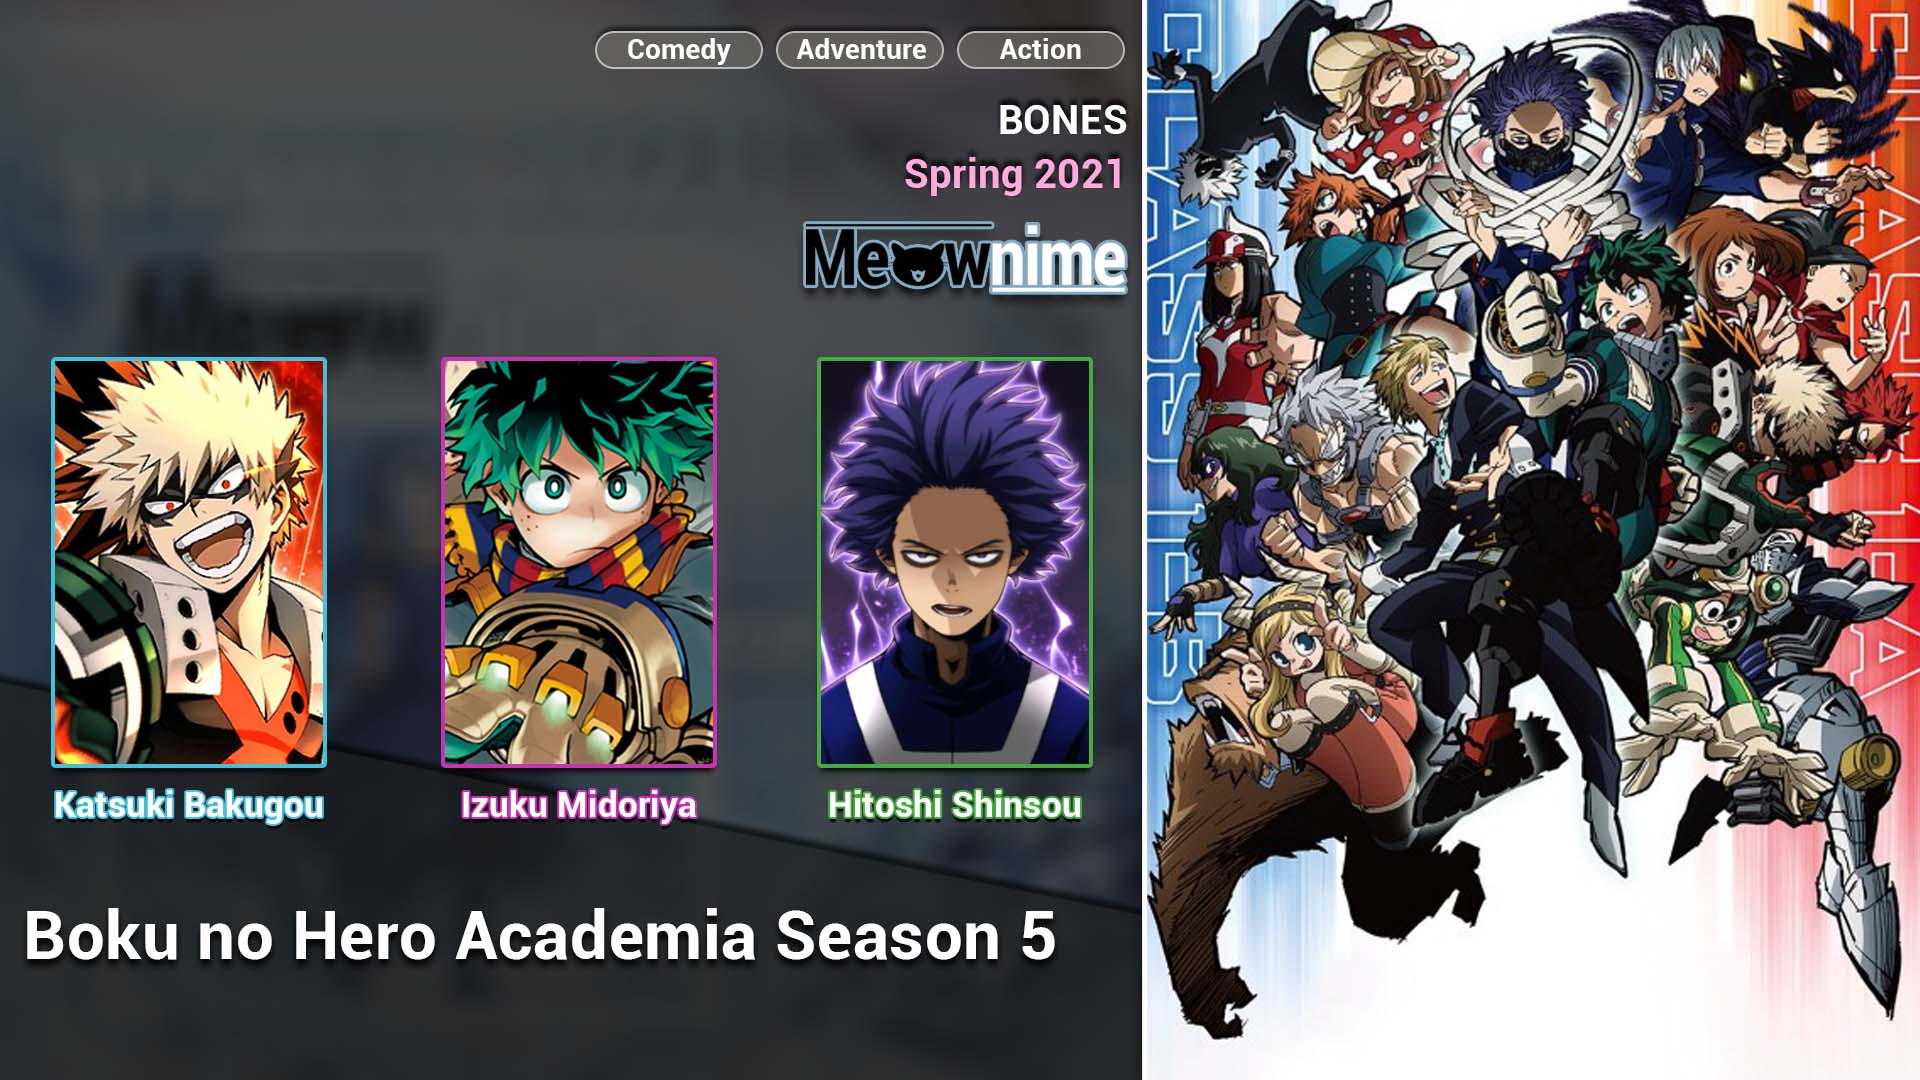 Boku no Hero Academia Season 5.